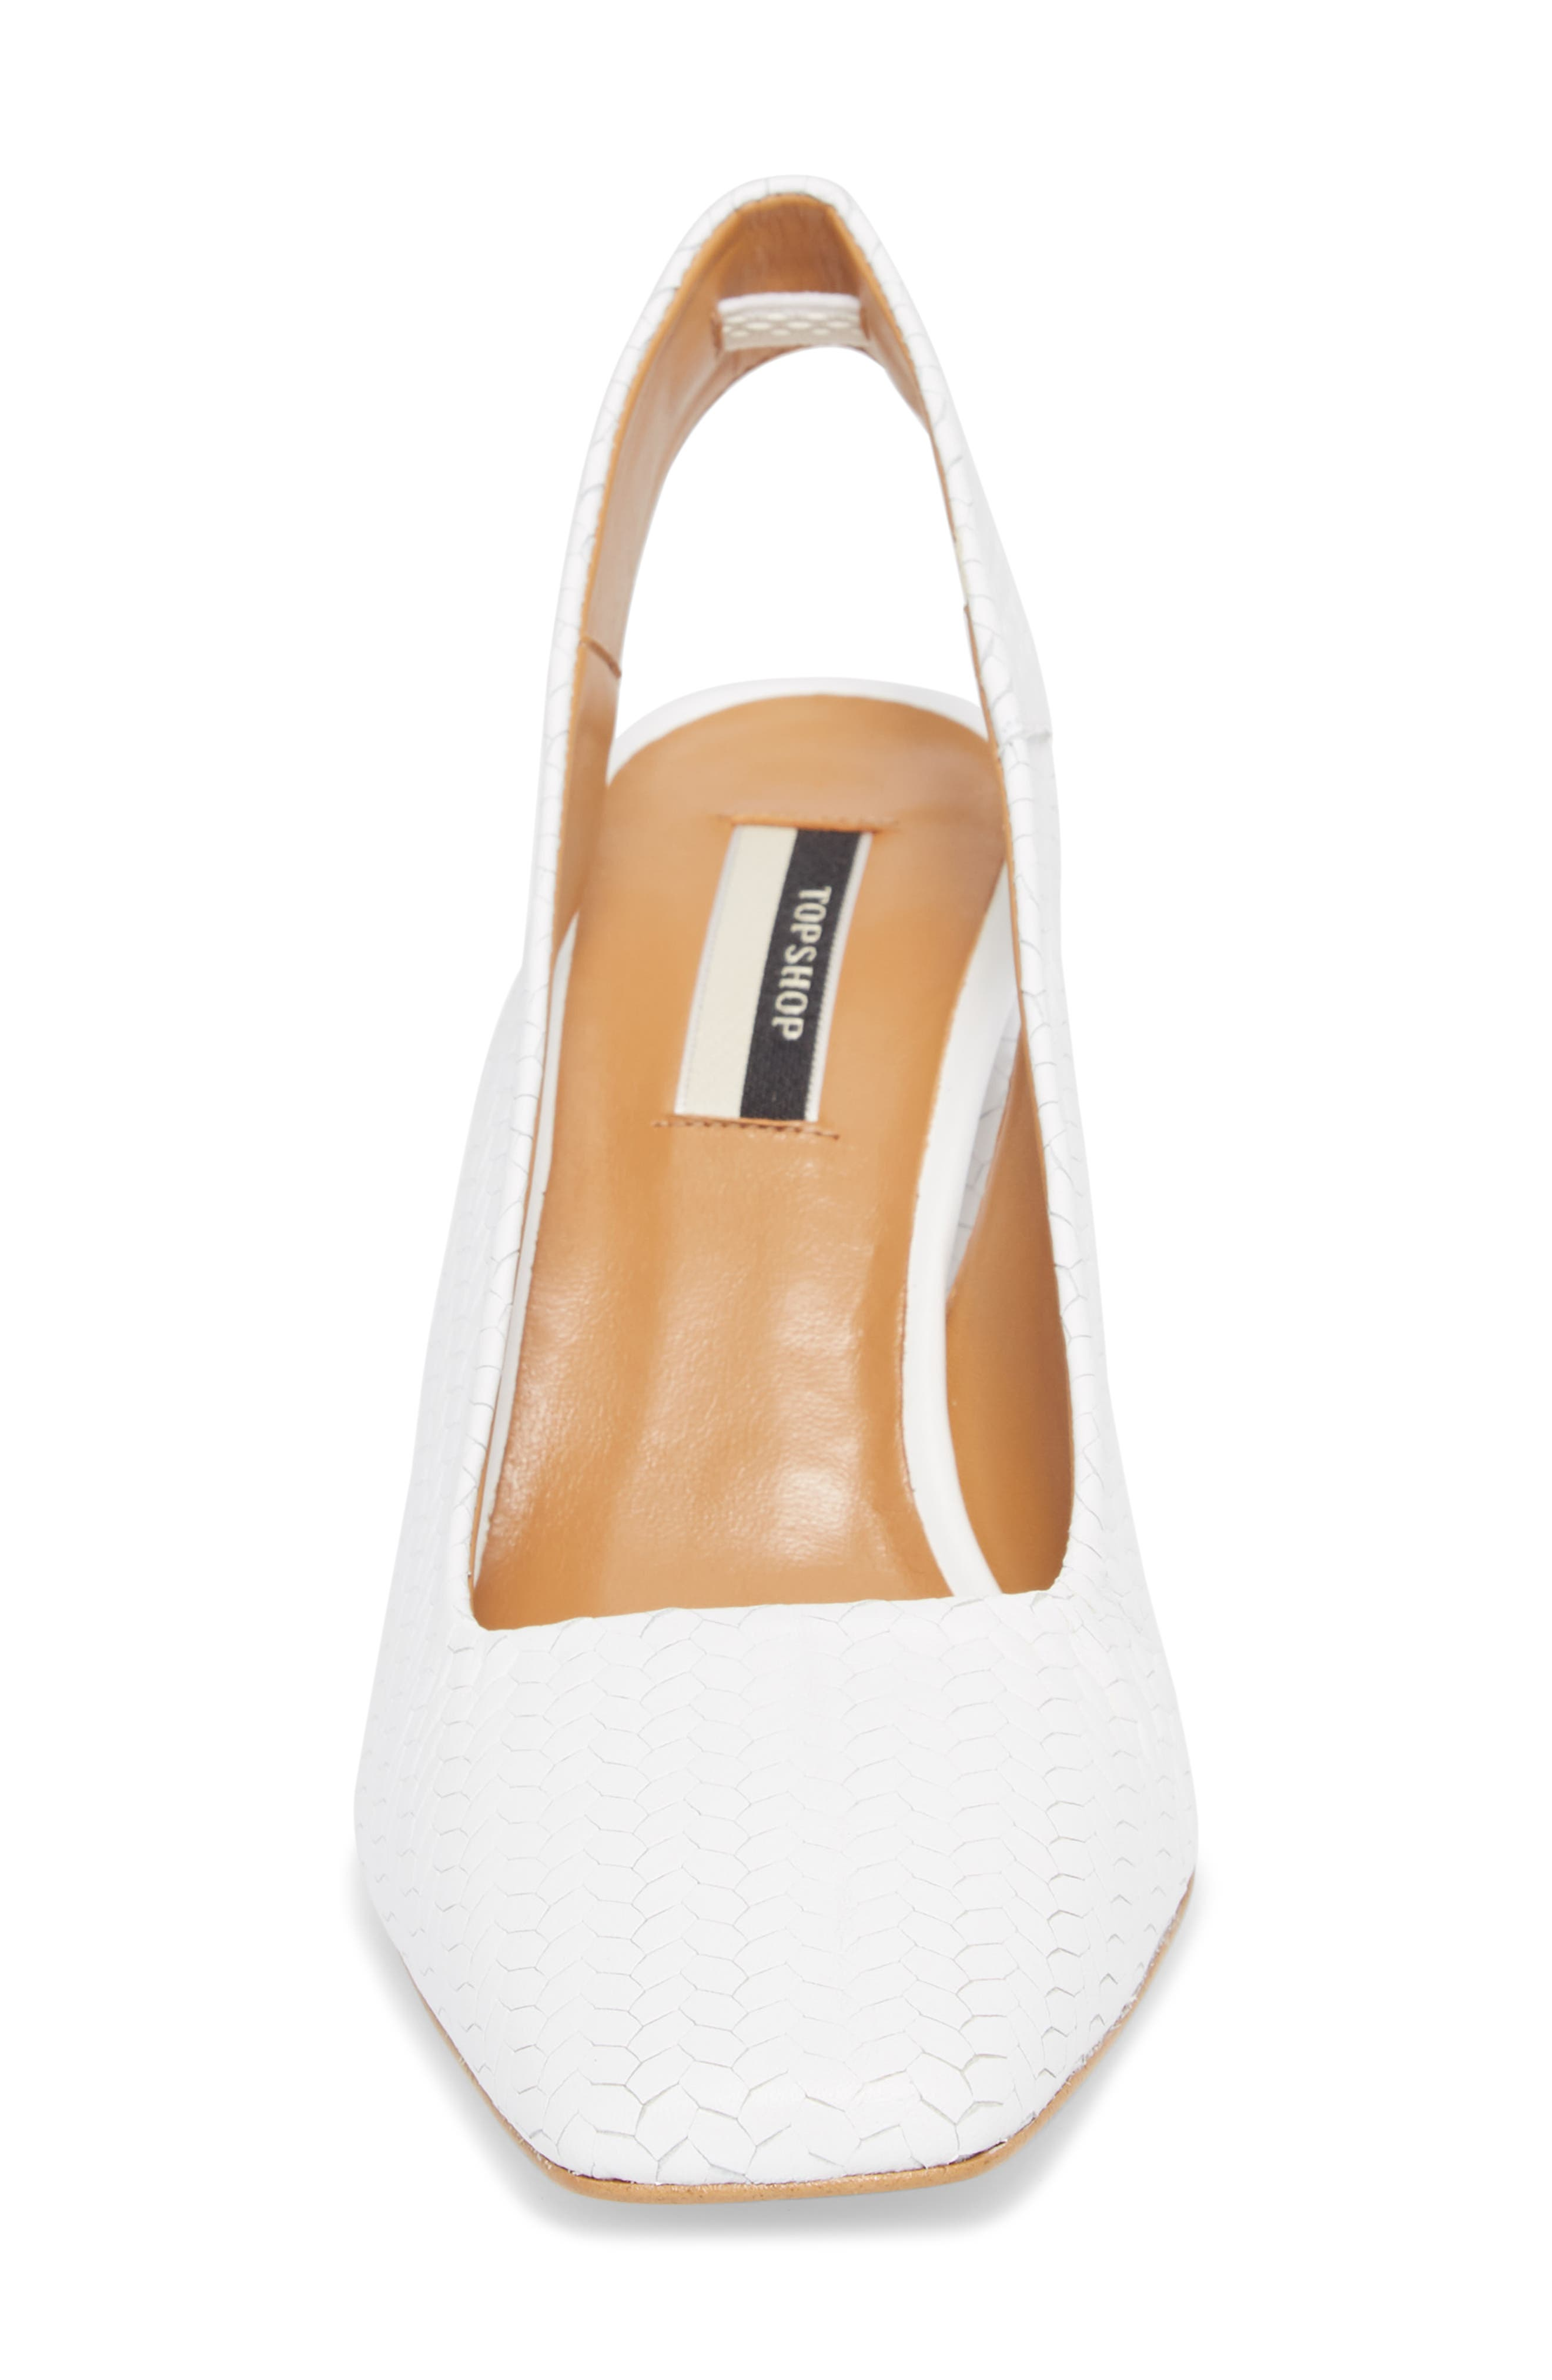 Gainor Block Heel Slingback Pump,                             Alternate thumbnail 4, color,                             White